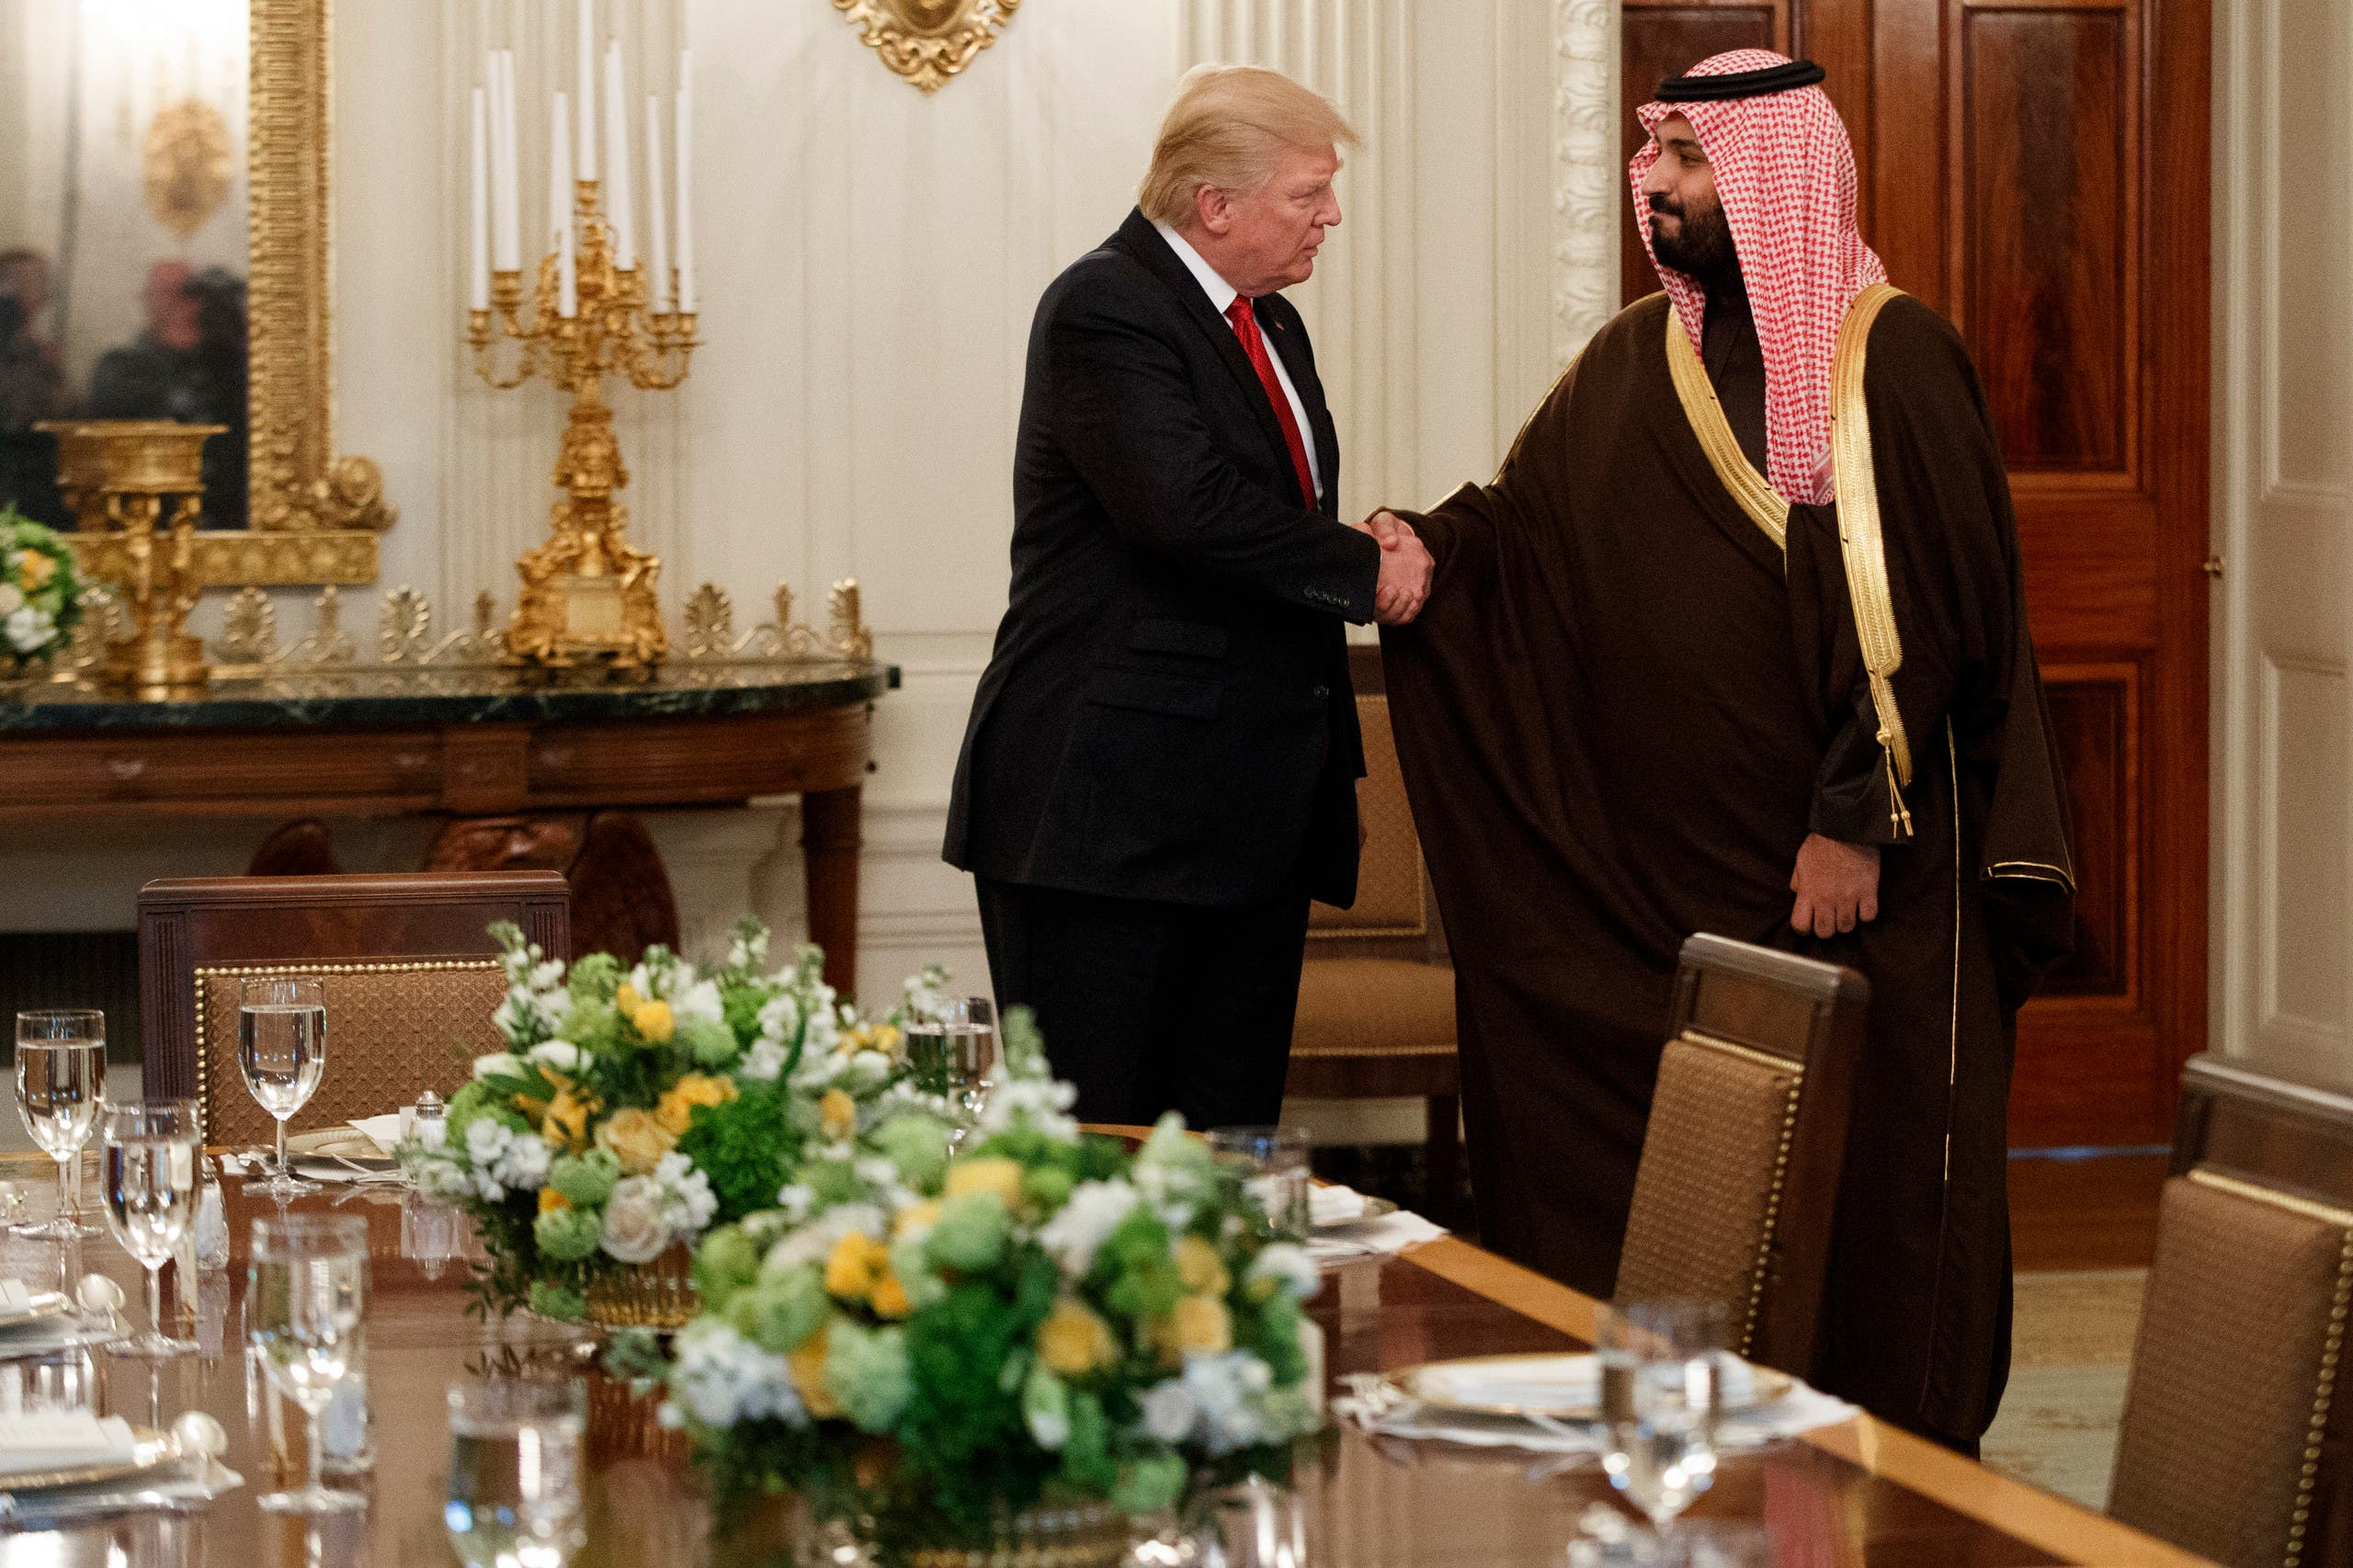 President Donald Trump shakes hands with Saudi Defense Minister and Deputy Crown Prince Mohammed bin Salman, Tuesday, March 14, 2017, in the State Dining Room of the White House in Washington. (AP Photo/Evan Vucci)